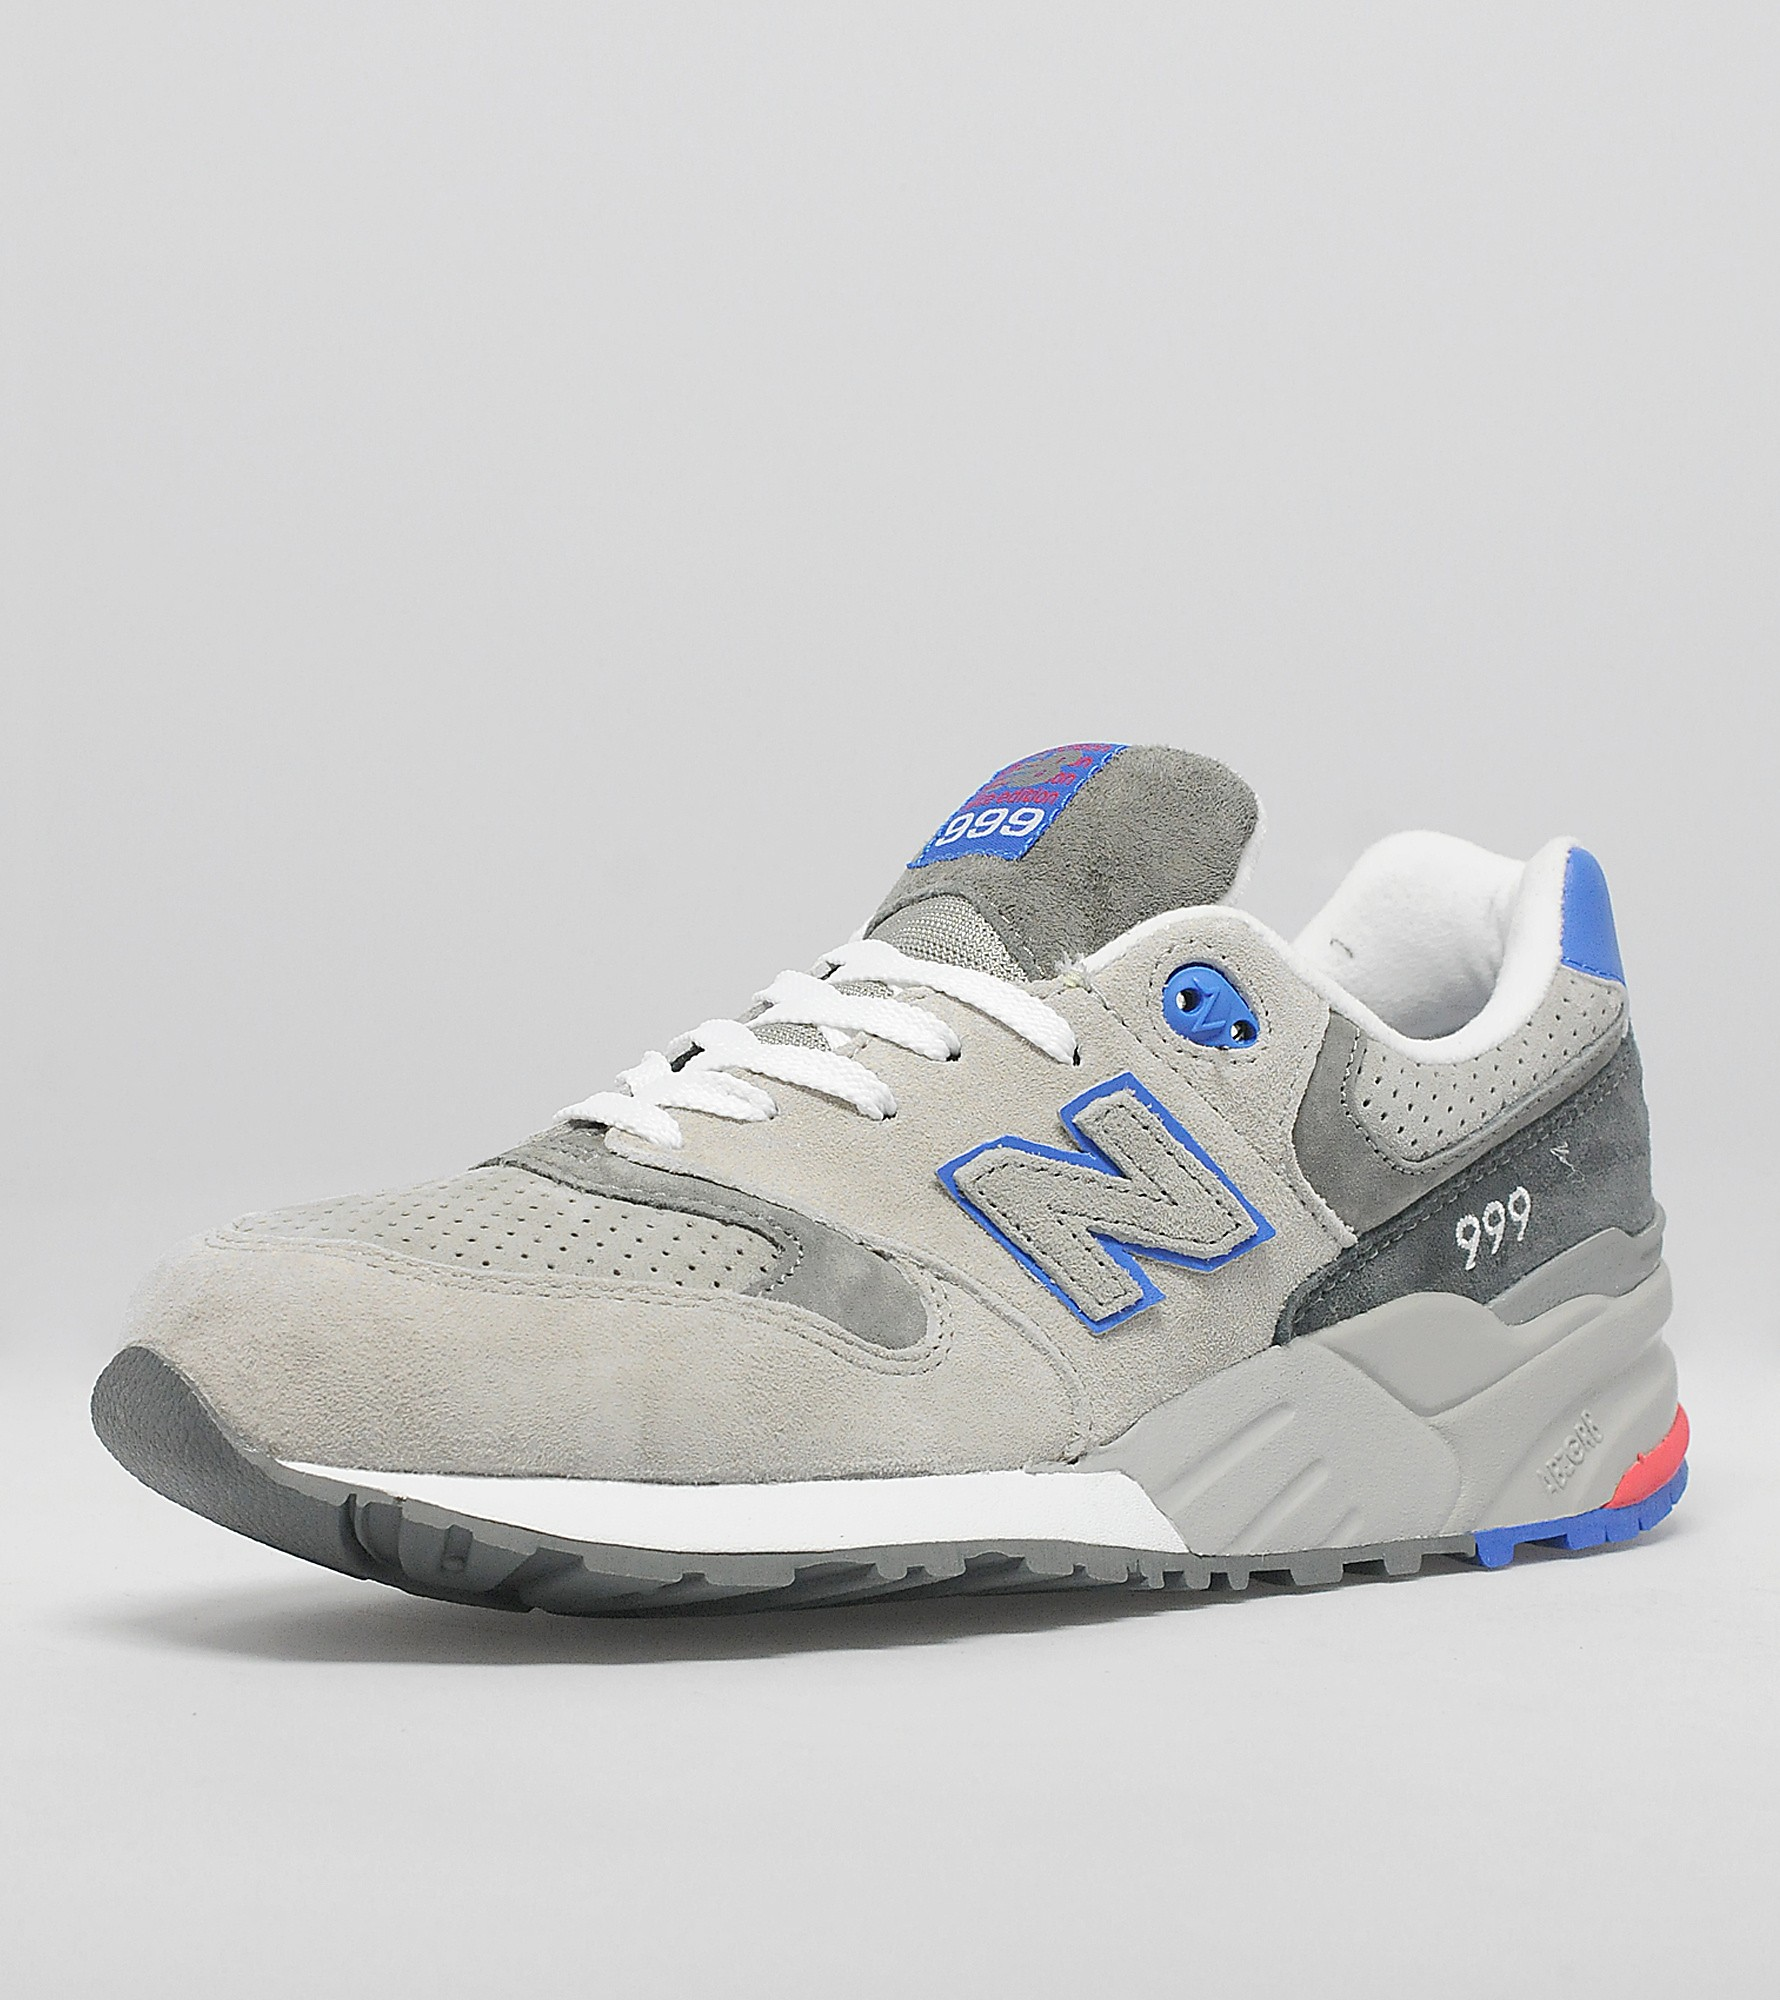 New Balance 999 'Barbershop Pack'